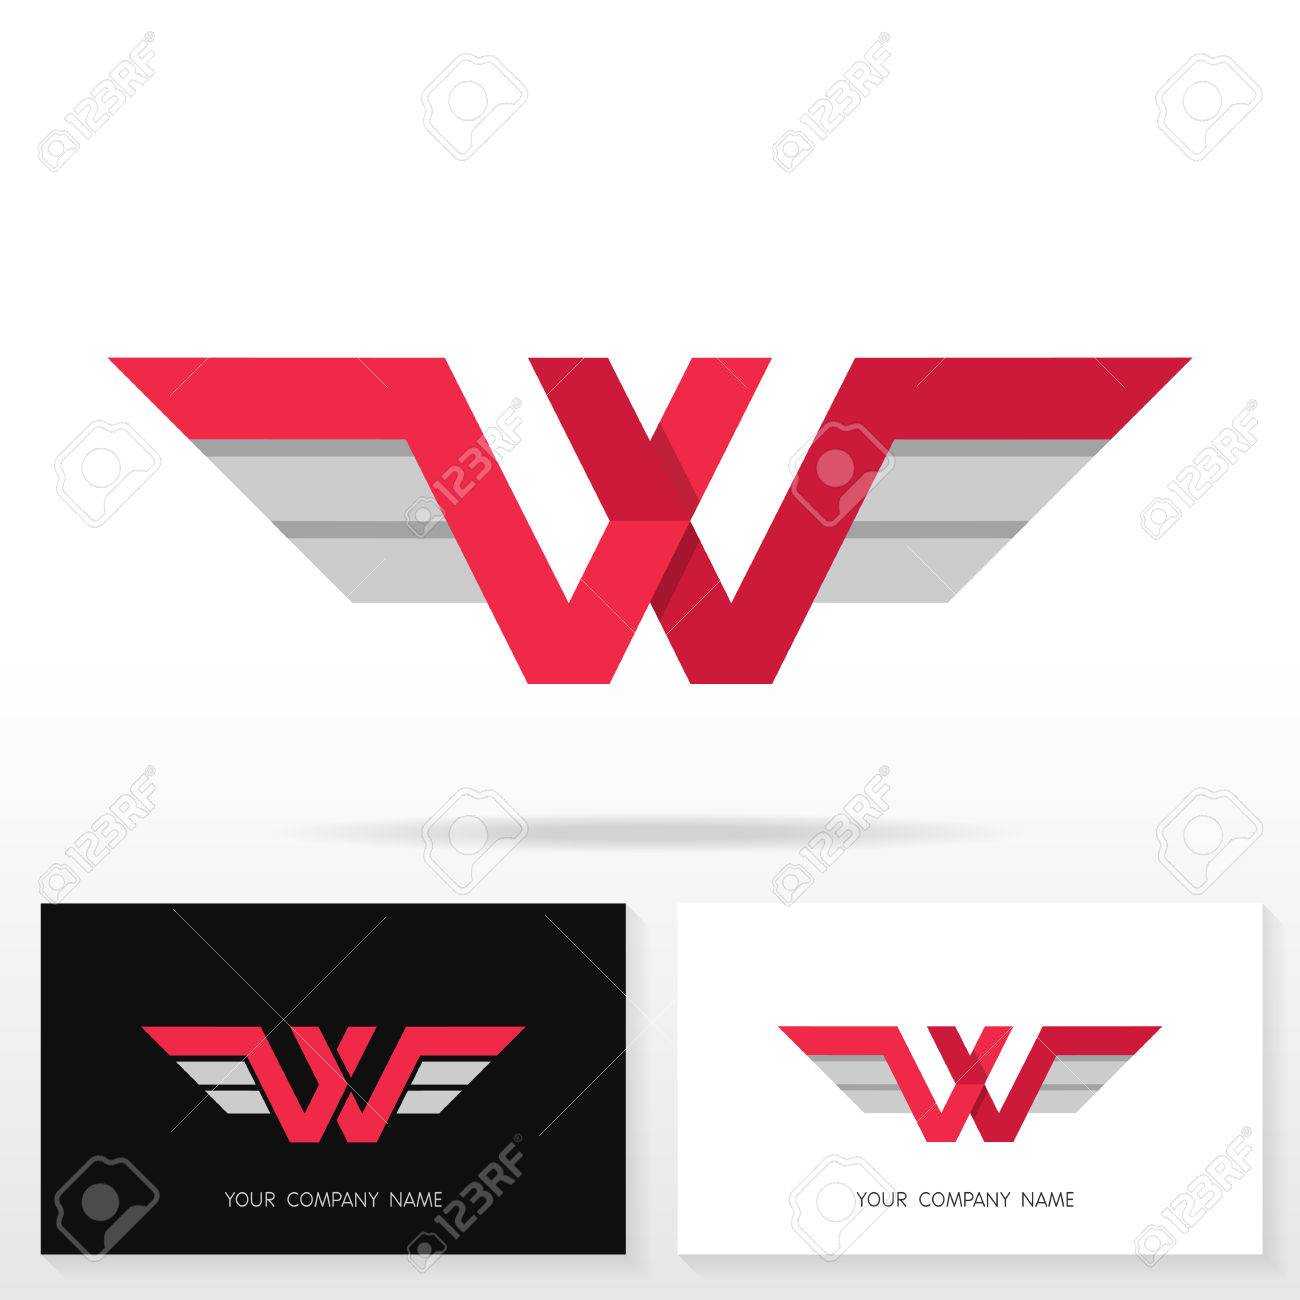 Letter w logo design business sign and business card templates banco de imagens letter w logo design business sign and business card templates reheart Gallery